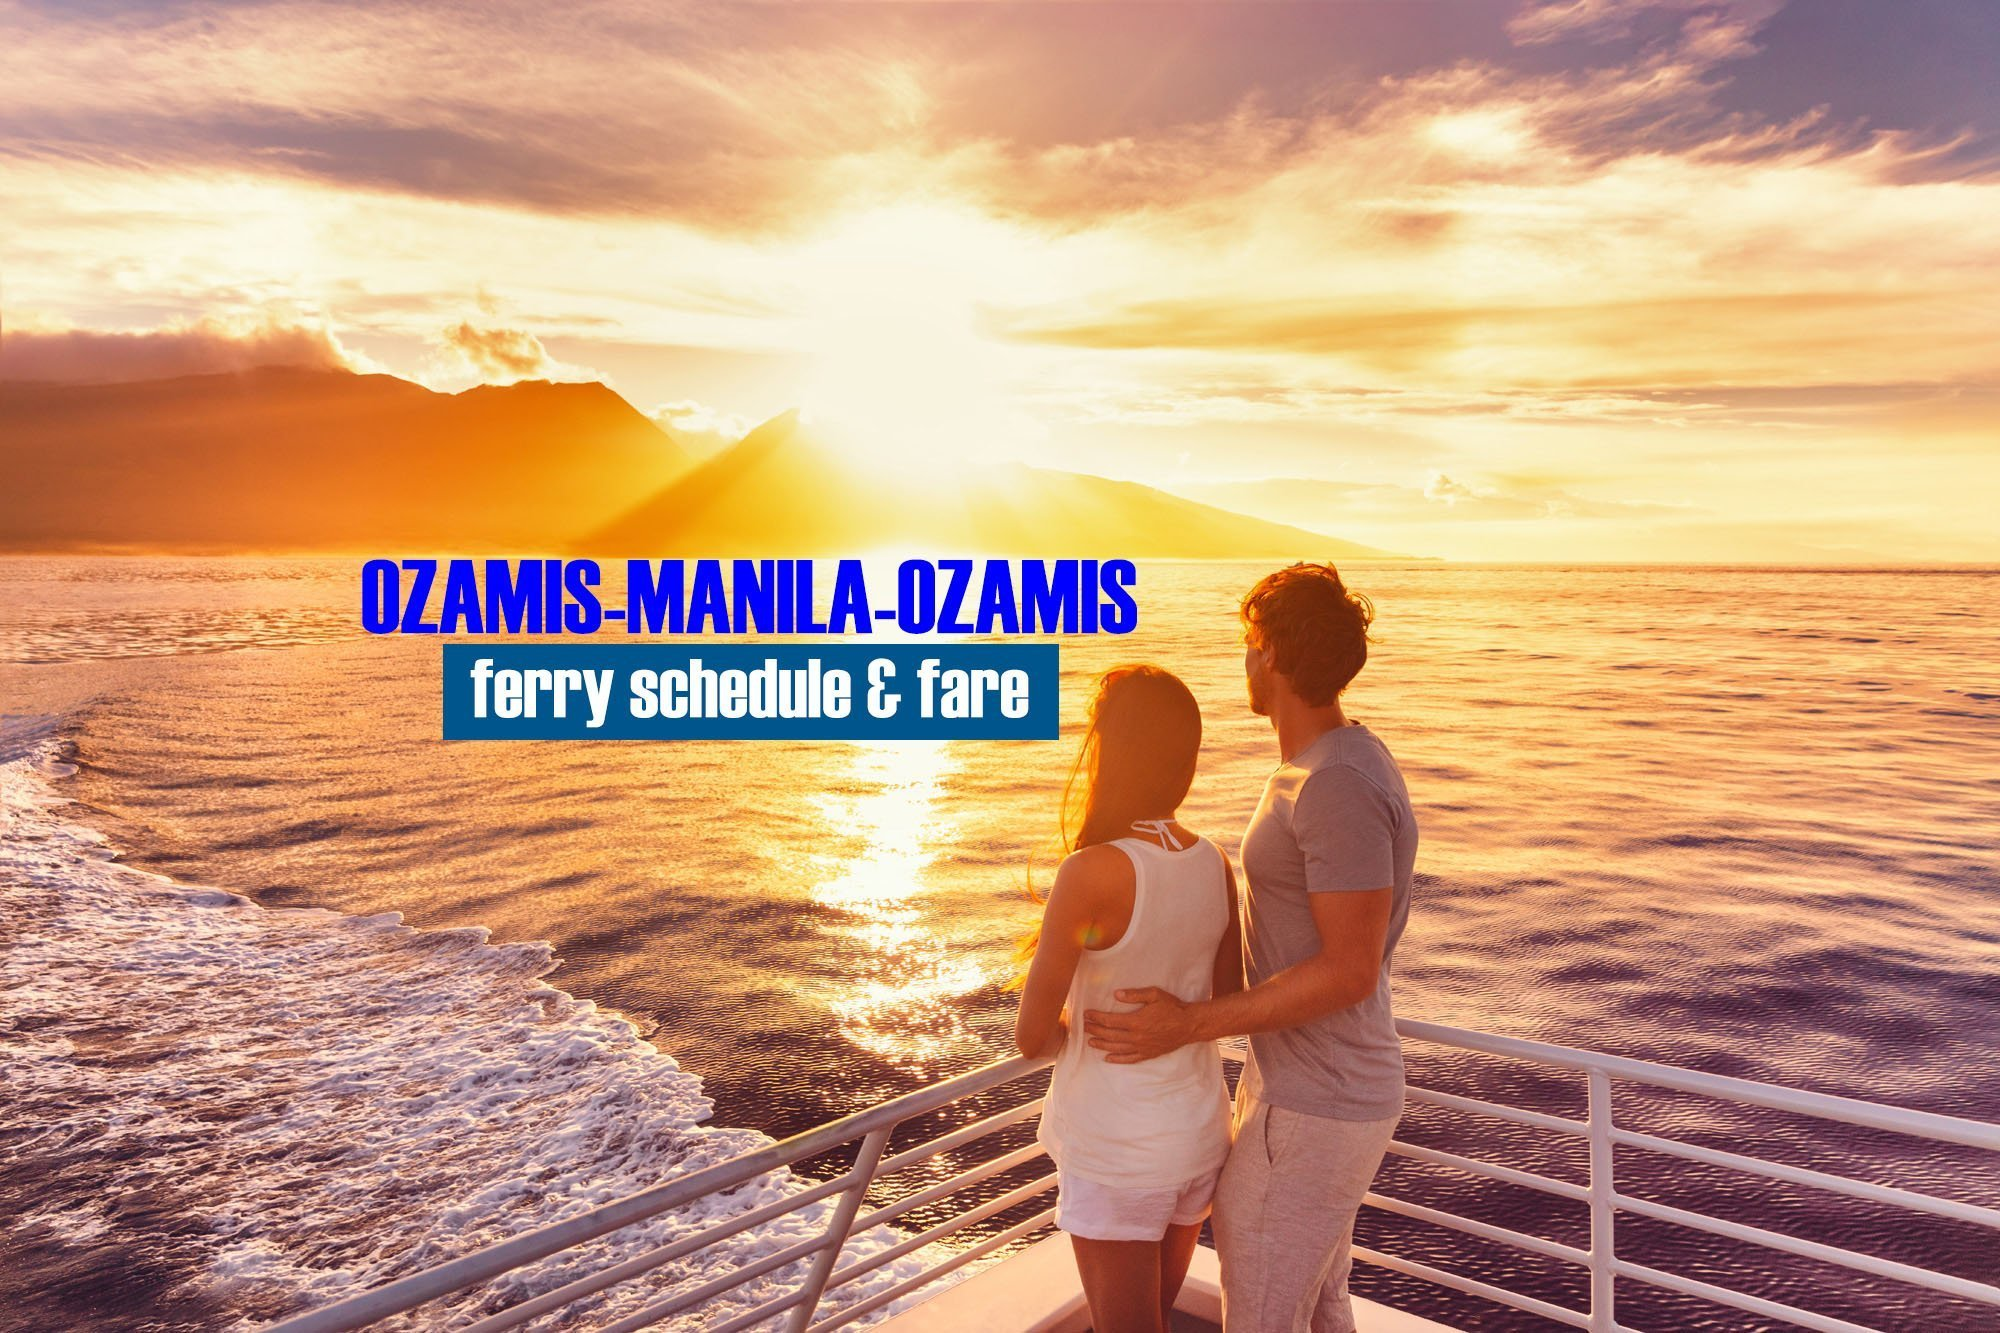 Ozamis to Manila: 2020 Ferry Schedule & Fare